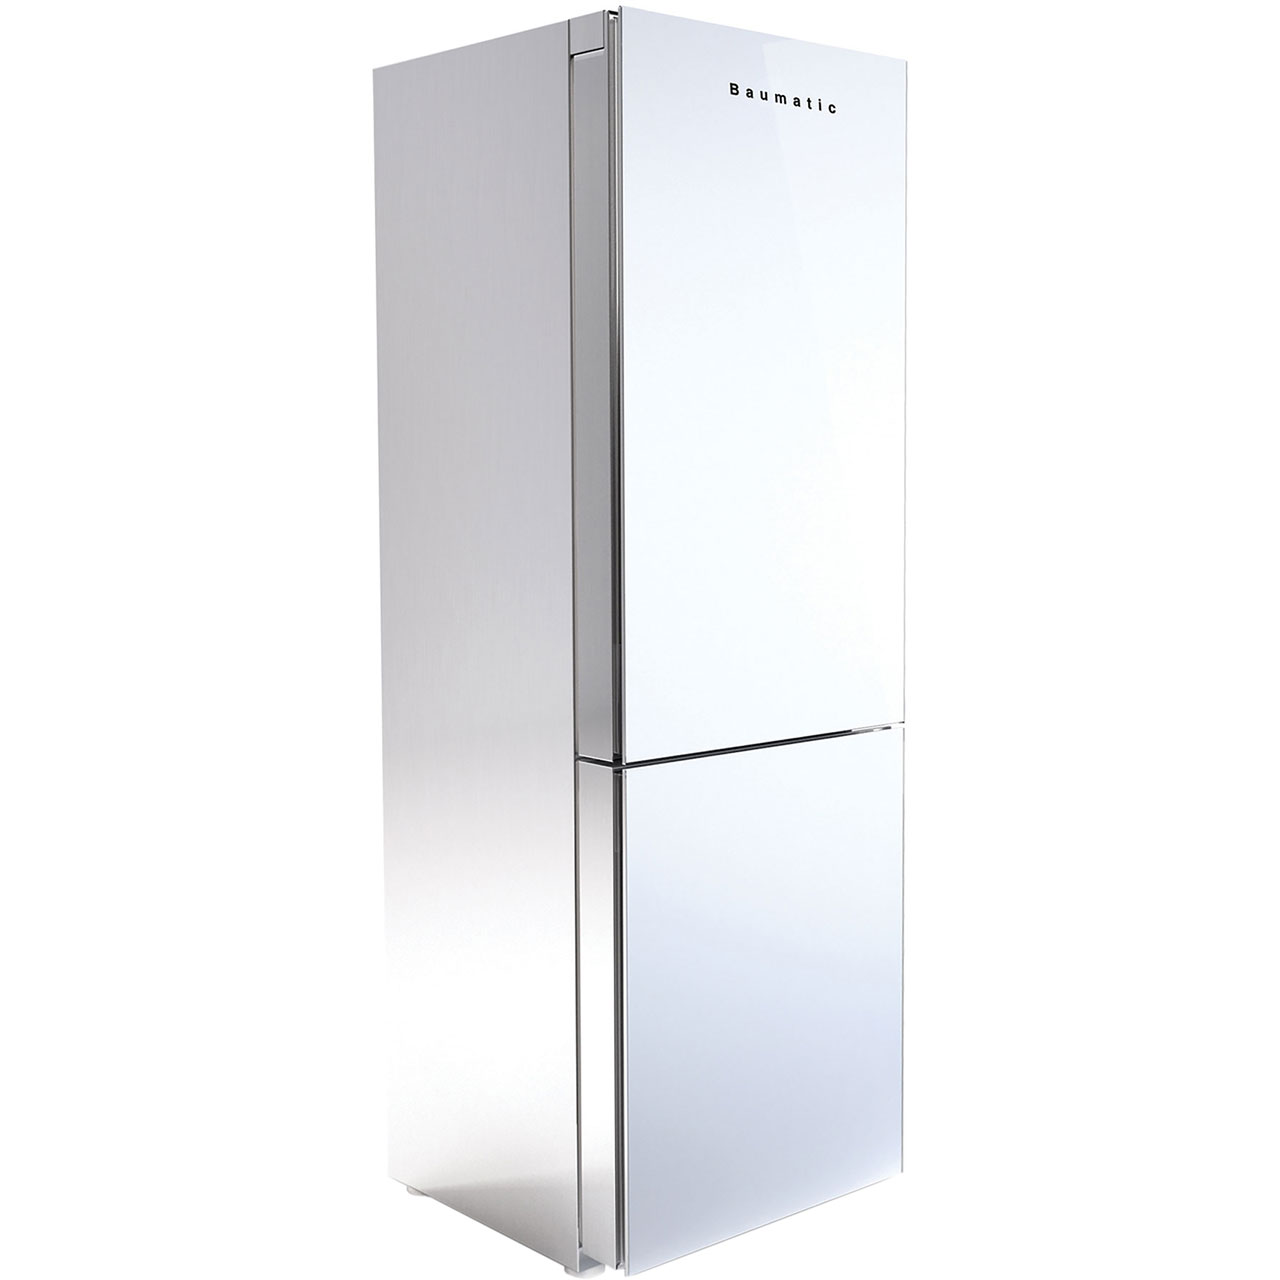 Baumatic DESIRE.WH Free Standing Fridge Freezer Frost Free in White  Stainless Steel